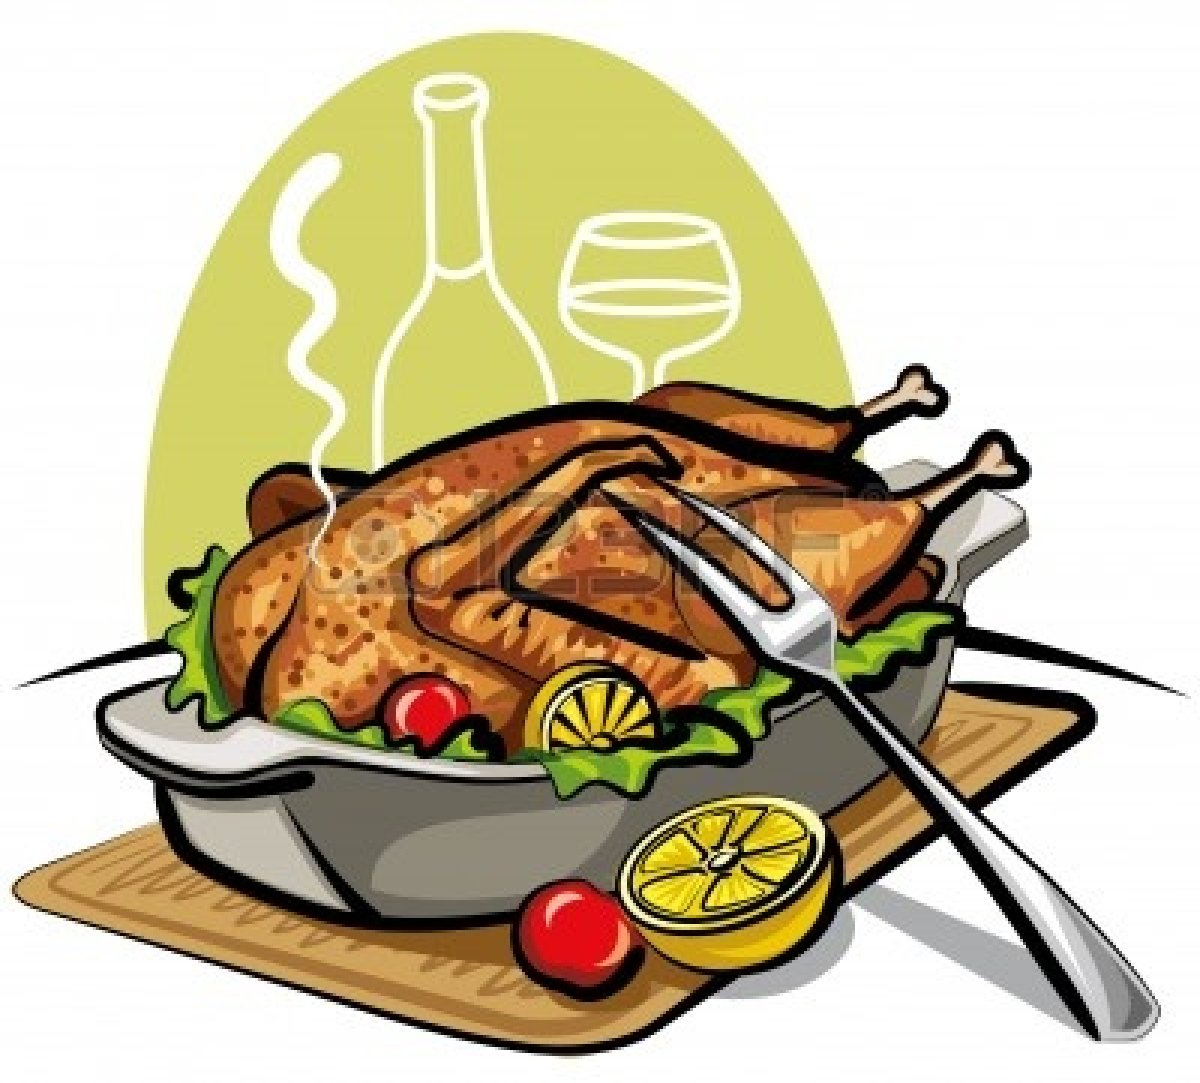 Bbq panda free images. Chickens clipart rotisserie chicken